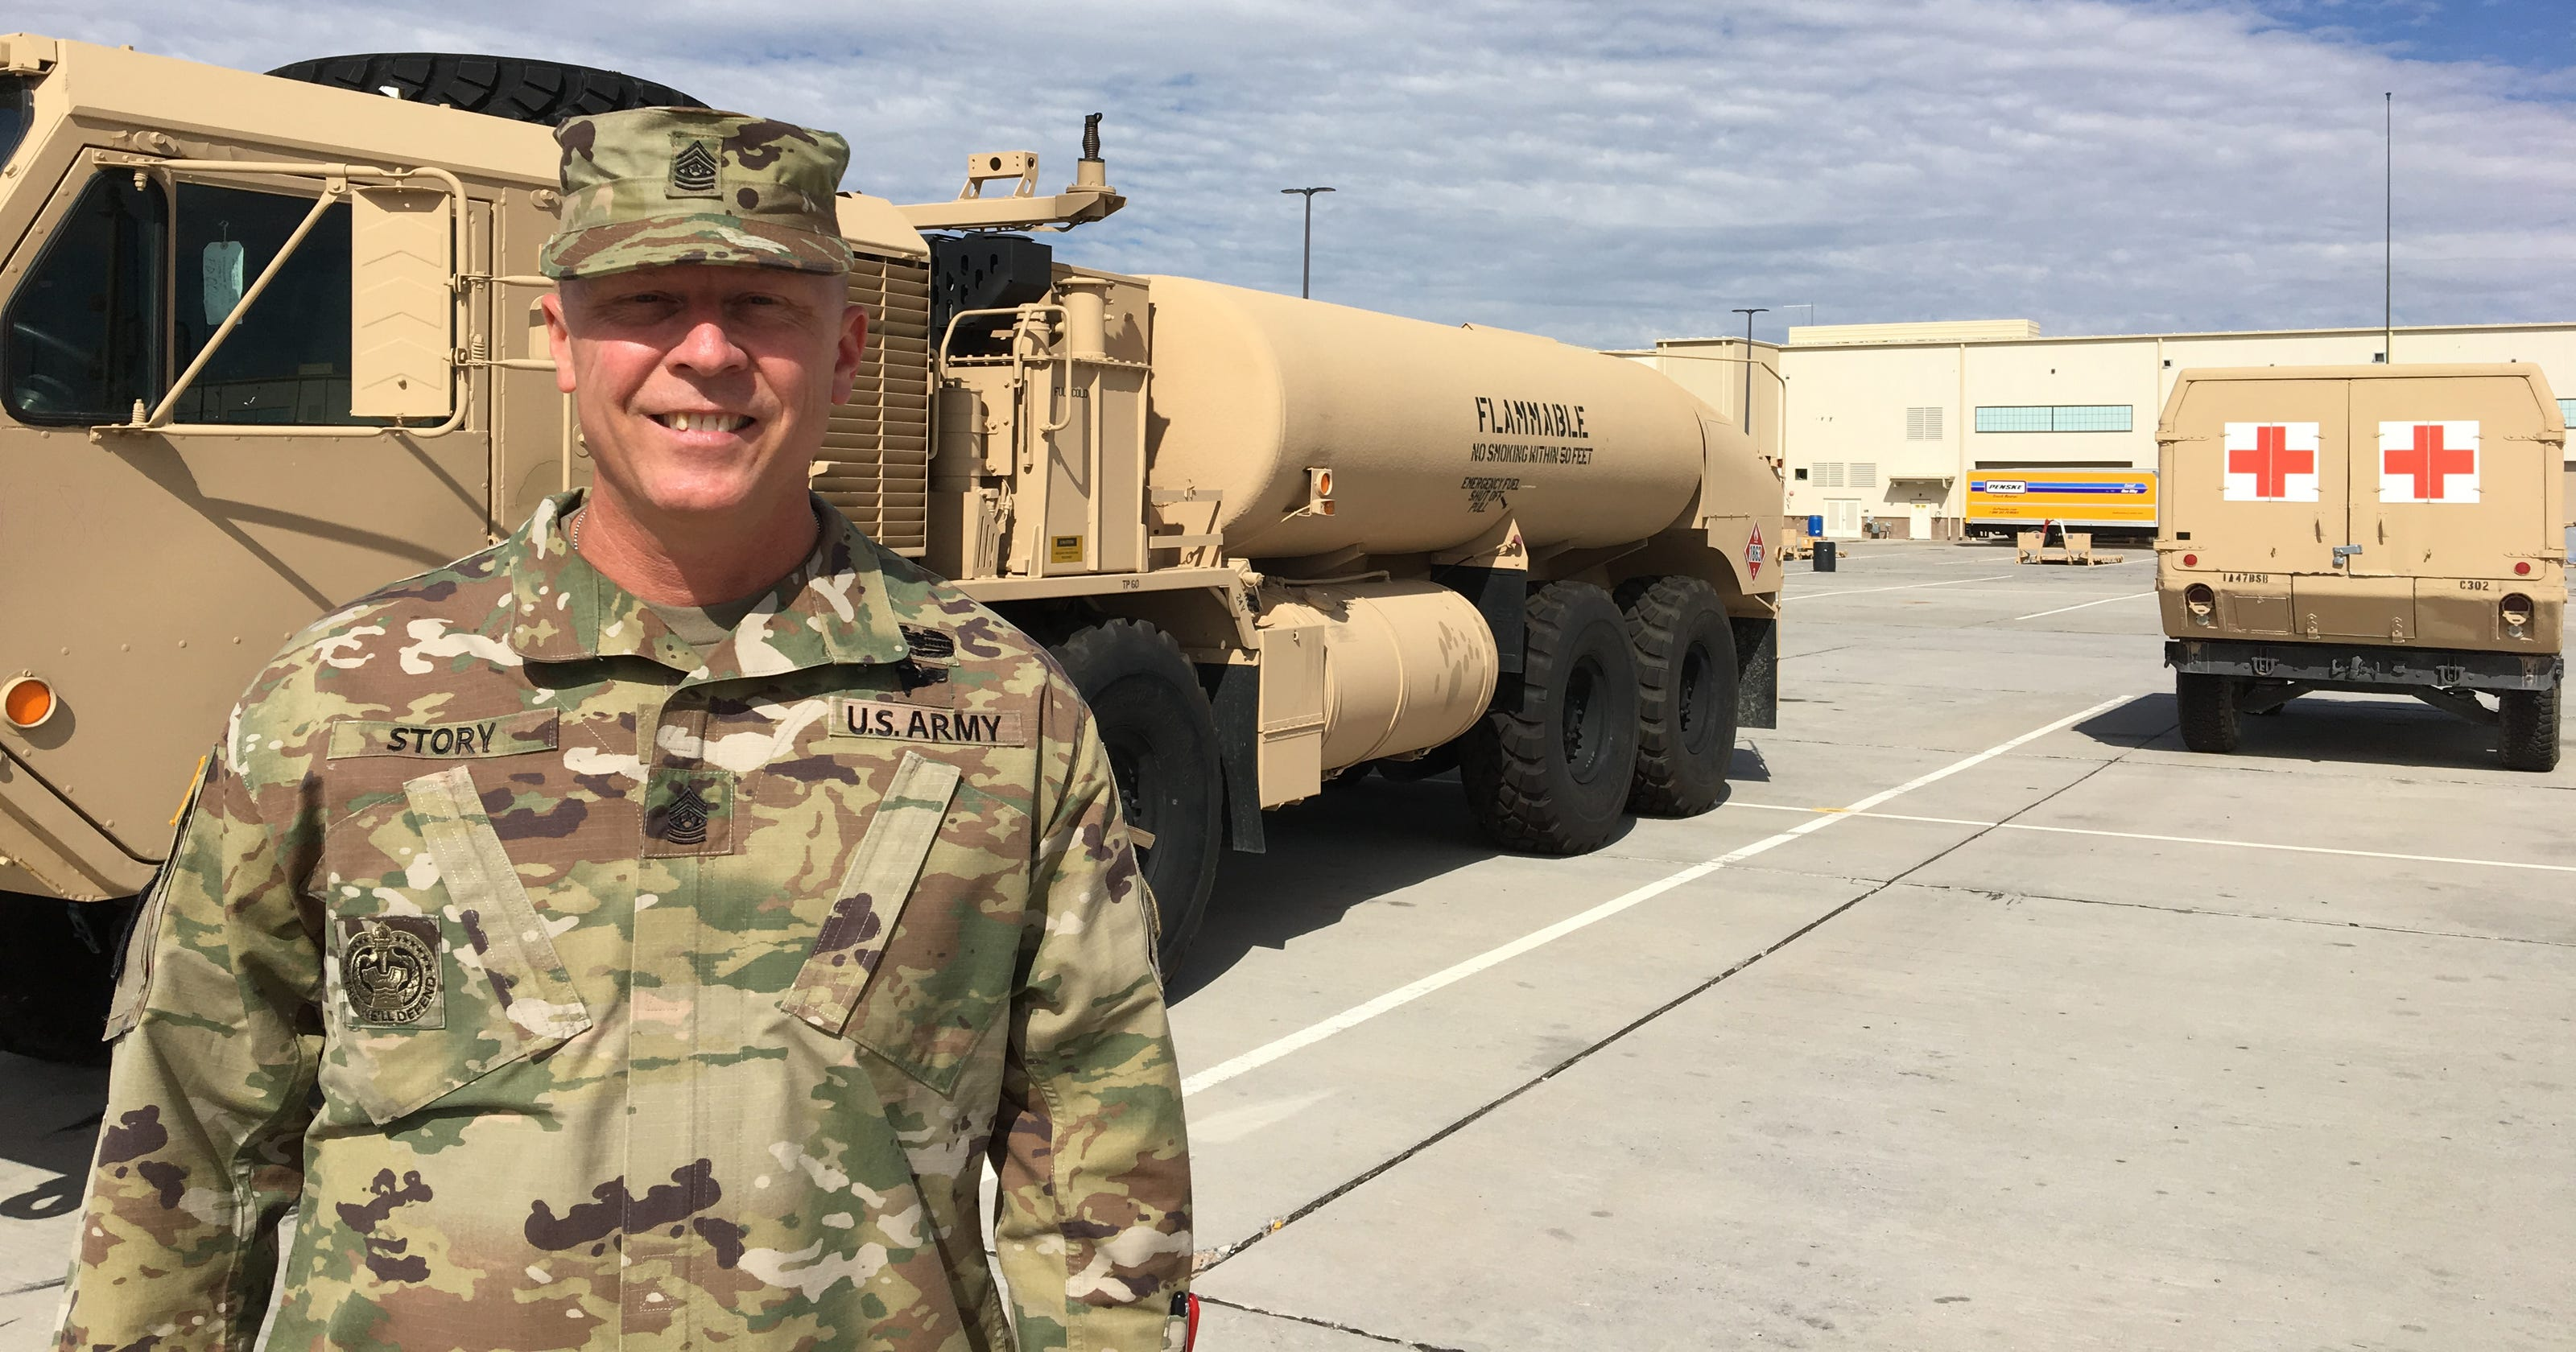 CSM William A  Story to lead Modern Pioneers on deployment